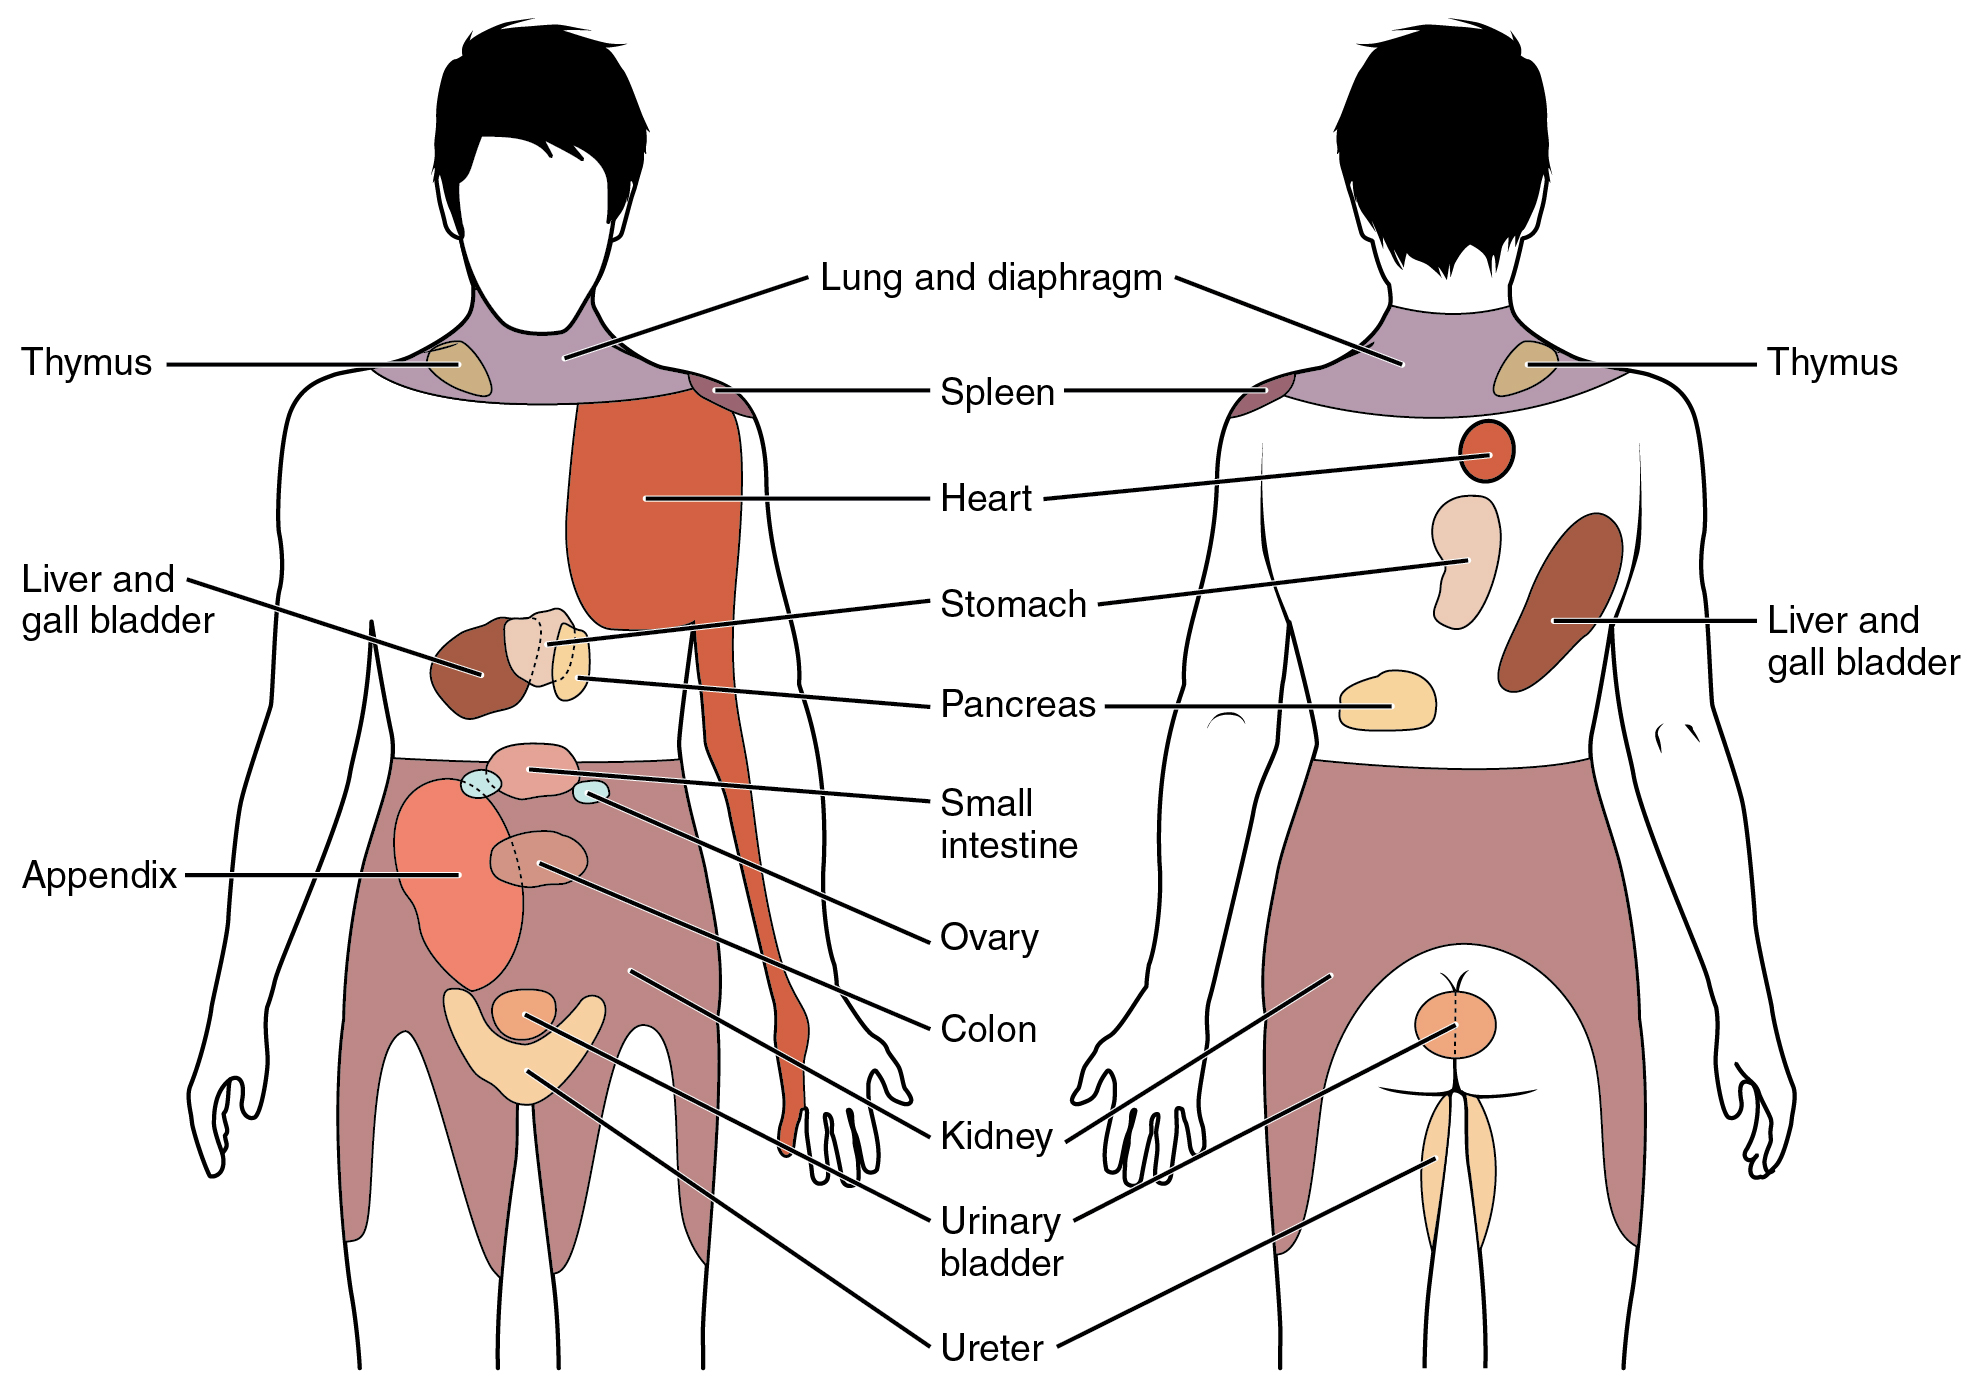 hight resolution of the figure shows the different organs in the human body the left panel shows the figure 15 7 referred pain chart